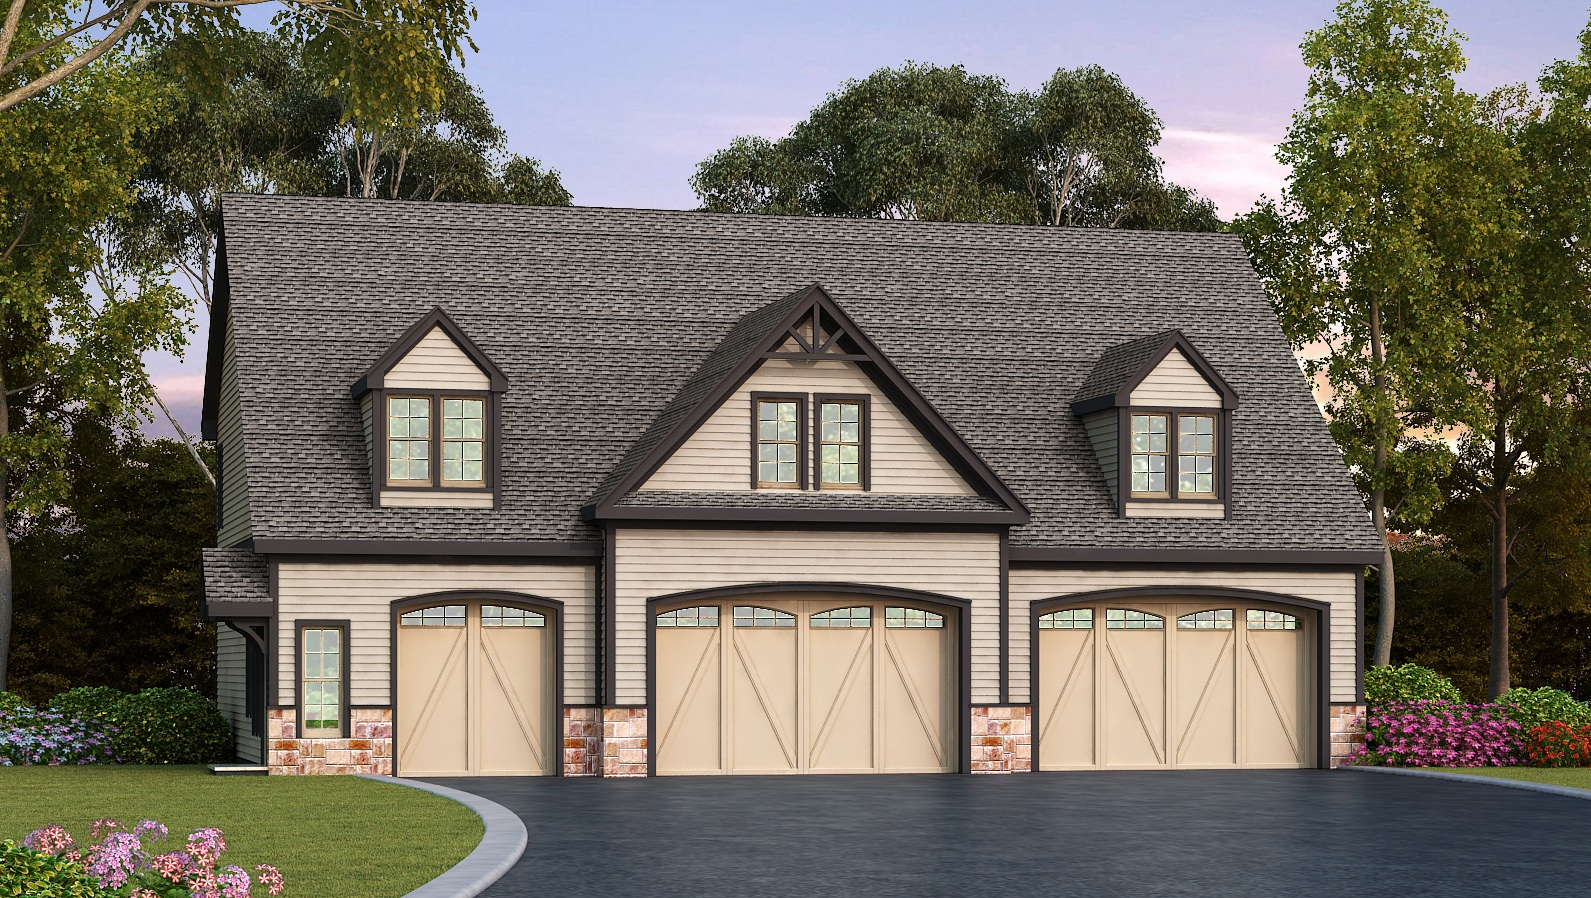 Residential 5 car garage plan 29870rl architectural for How large is a 2 car garage